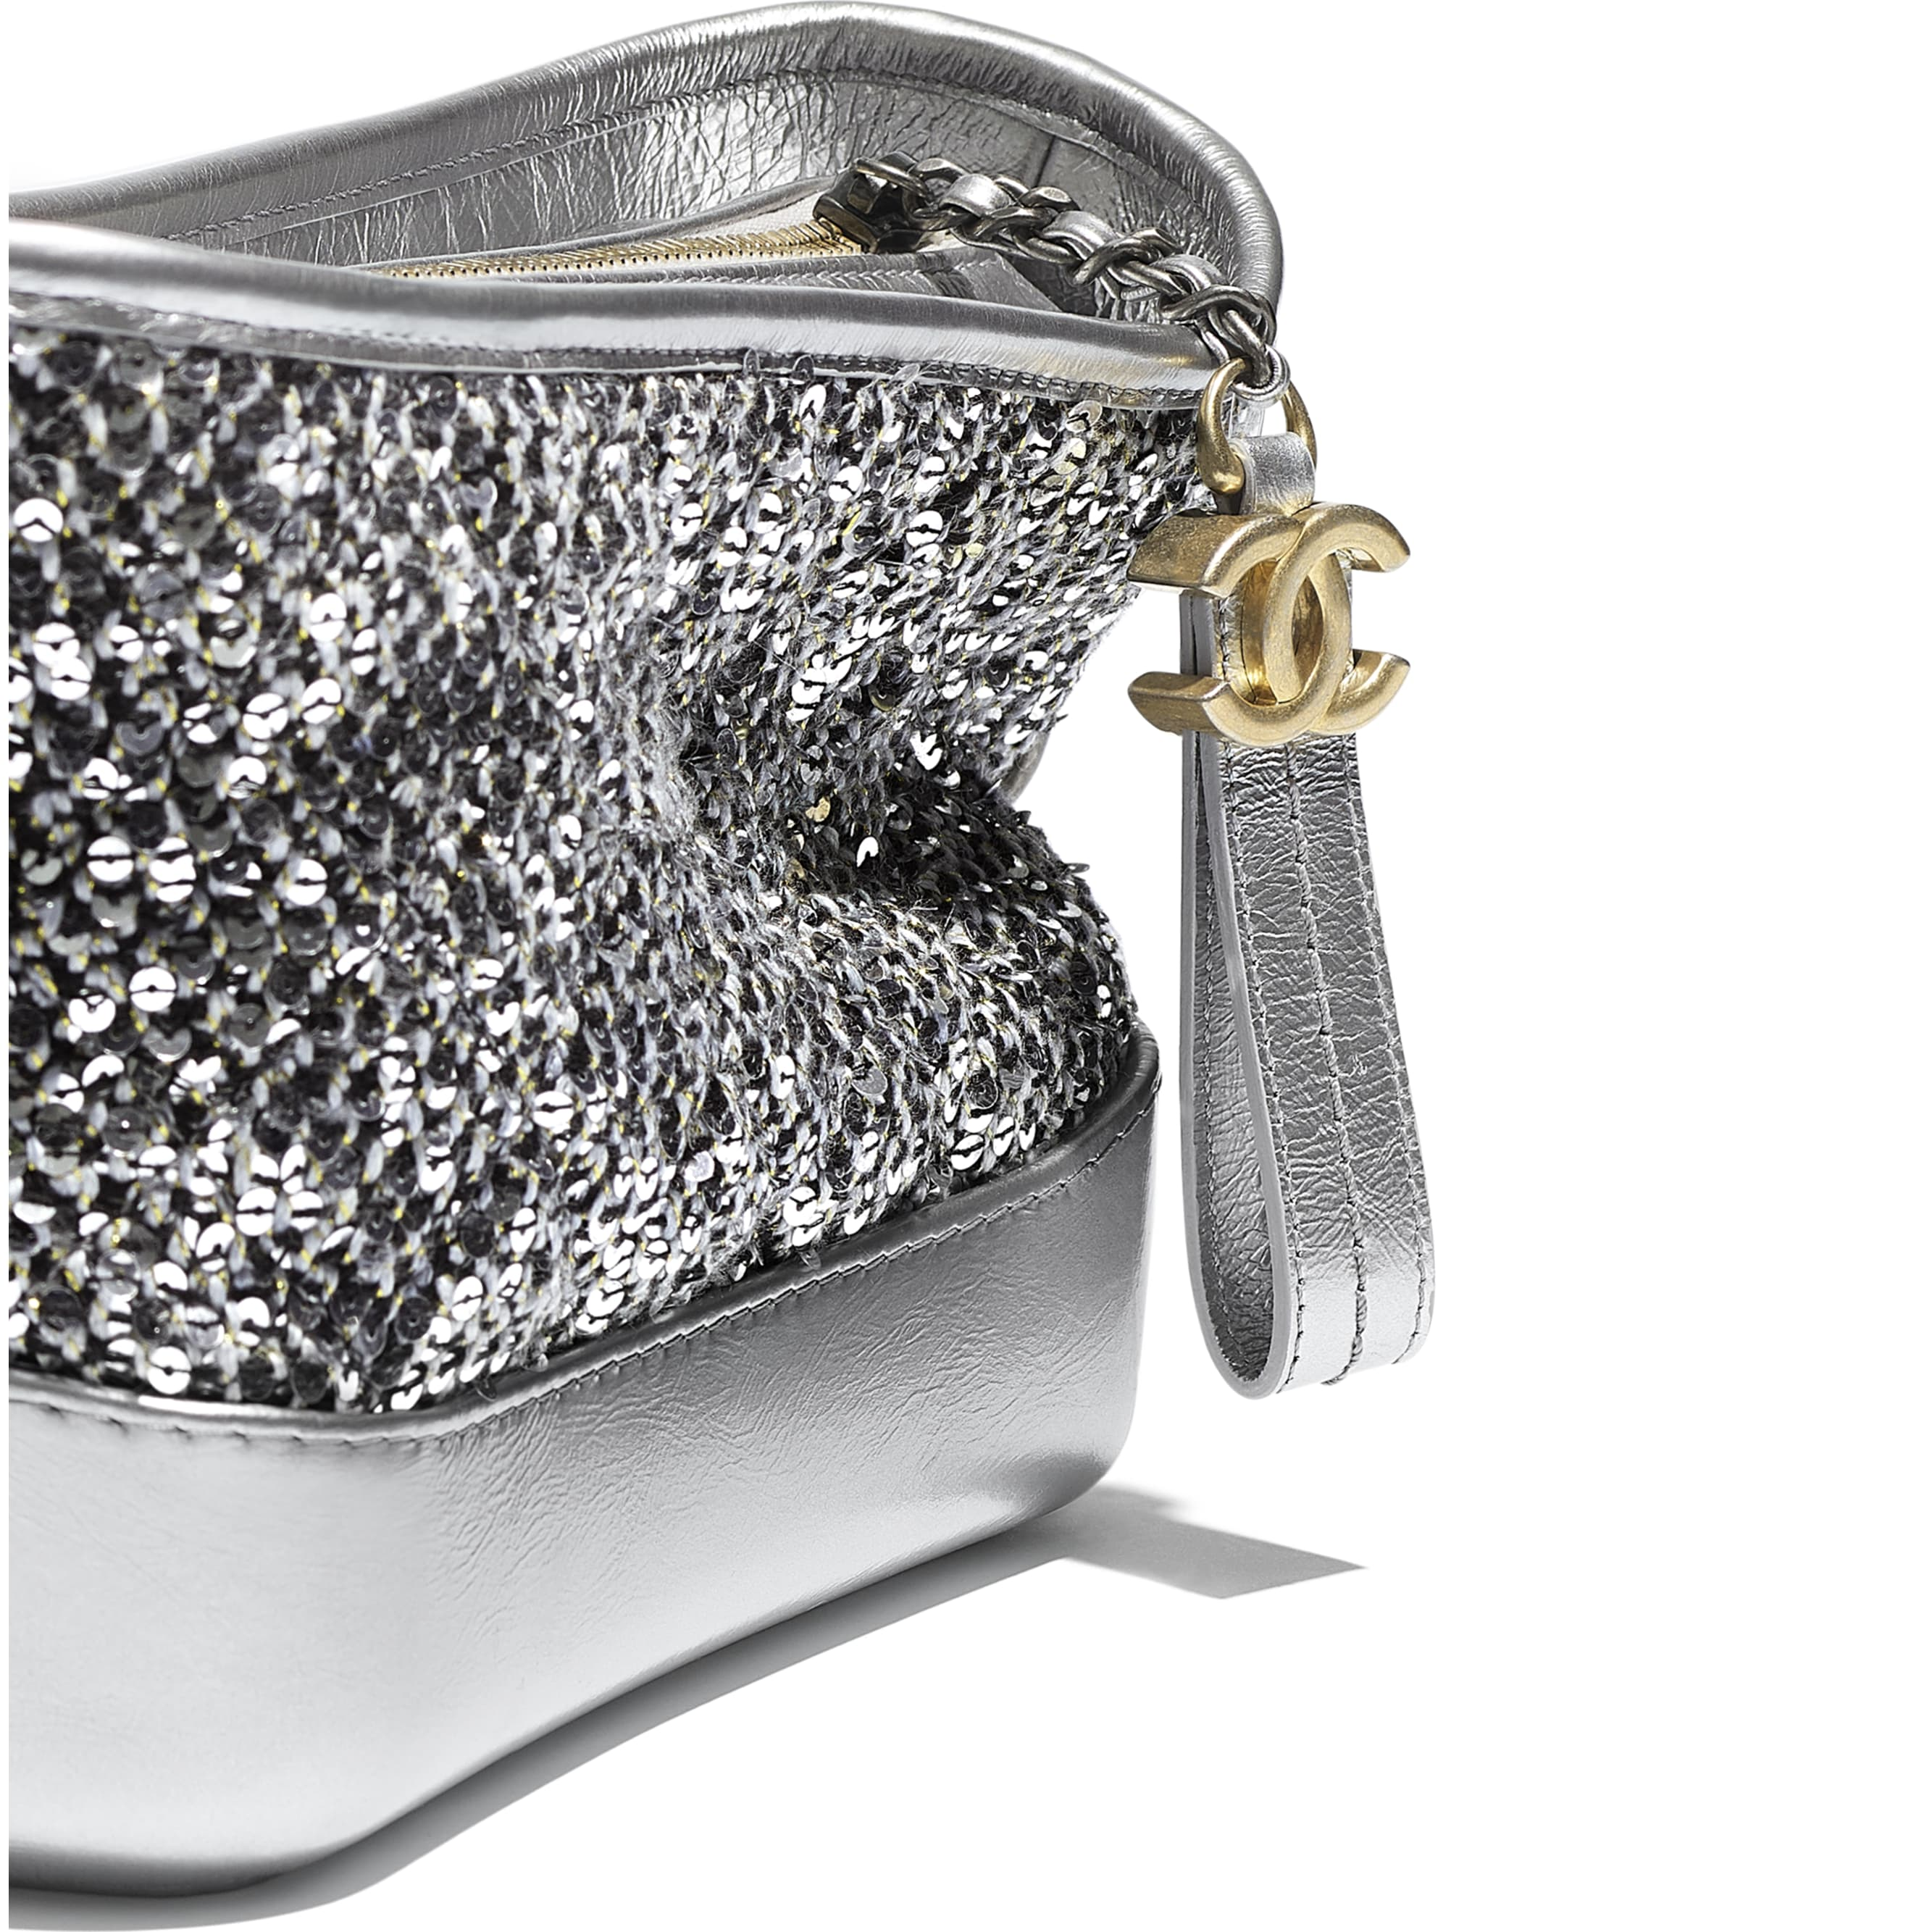 CHANEL'S GABRIELLE Small Hobo Bag - Silver, Black & Gold - Tweed, Sequins, Calfskin, Gold-Tone, Silver-Tone & Ruthenium-Finish Metal - CHANEL - Extra view - see standard sized version